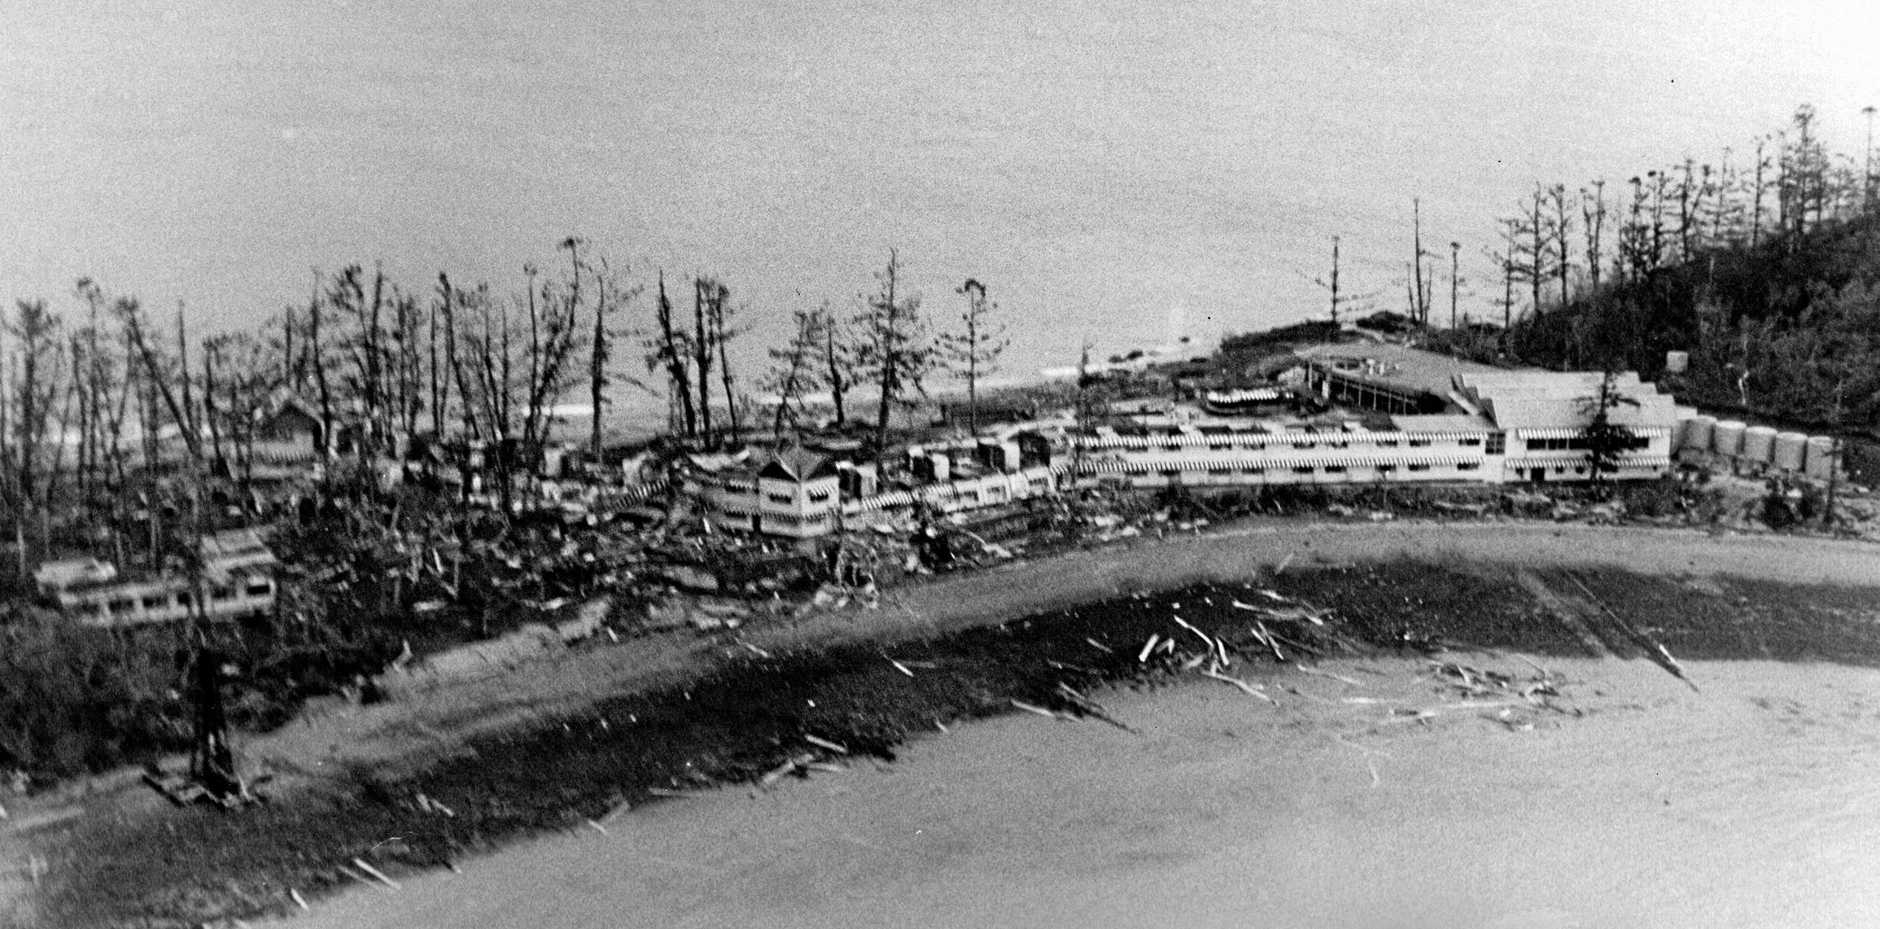 Daydream Island after Cyclone Ada struck, 1970.